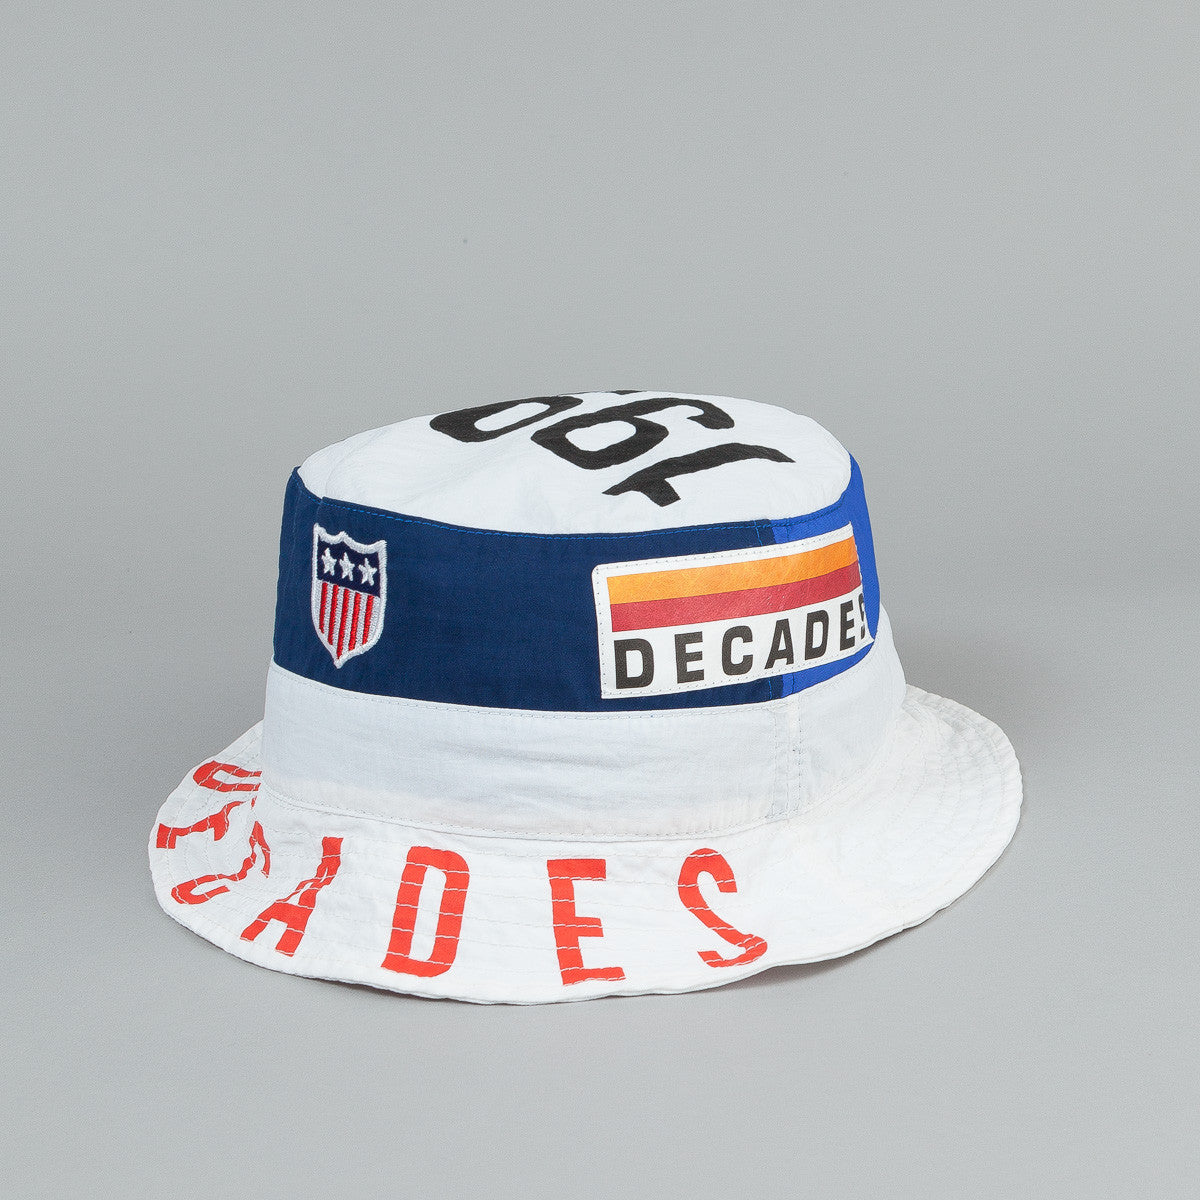 The Decades Summer Games Bucket Hat